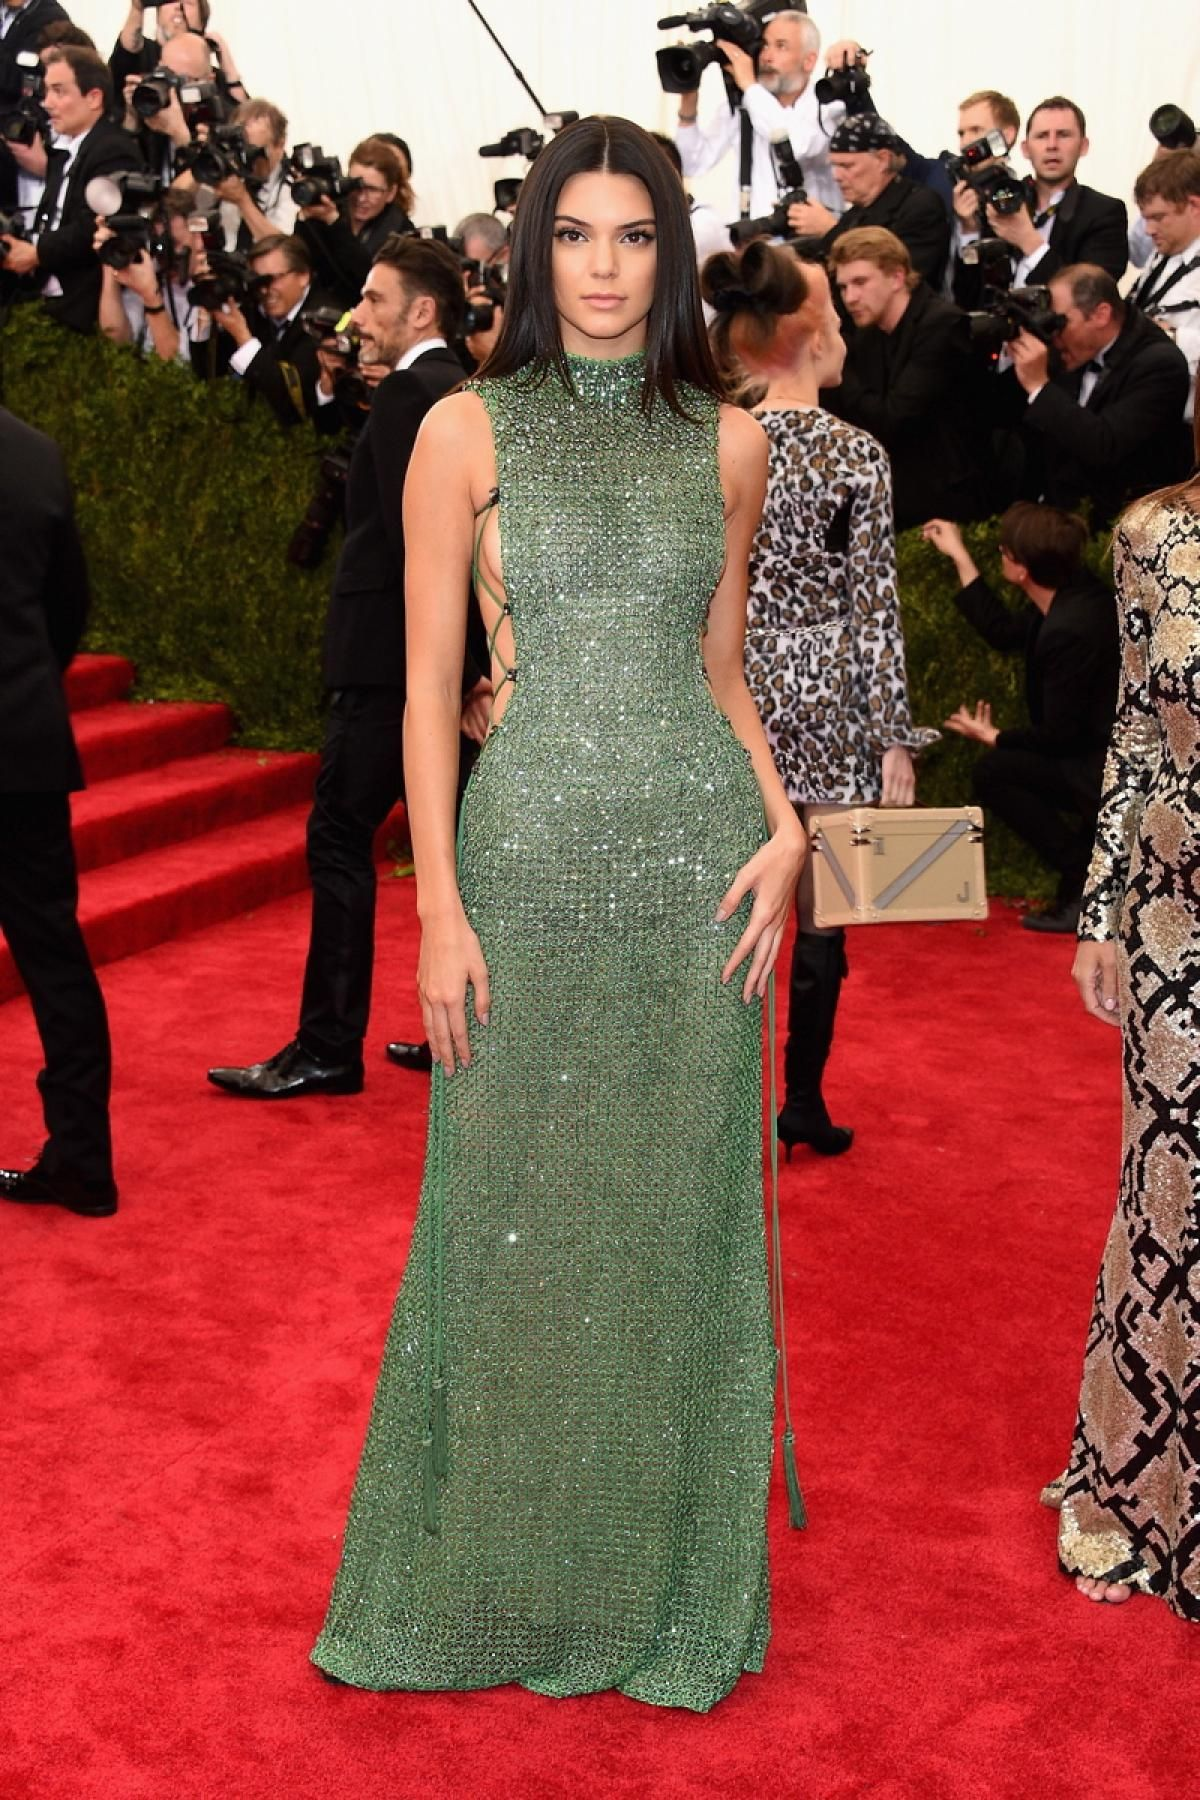 Kendall Jenner turned heads when she arrived to the